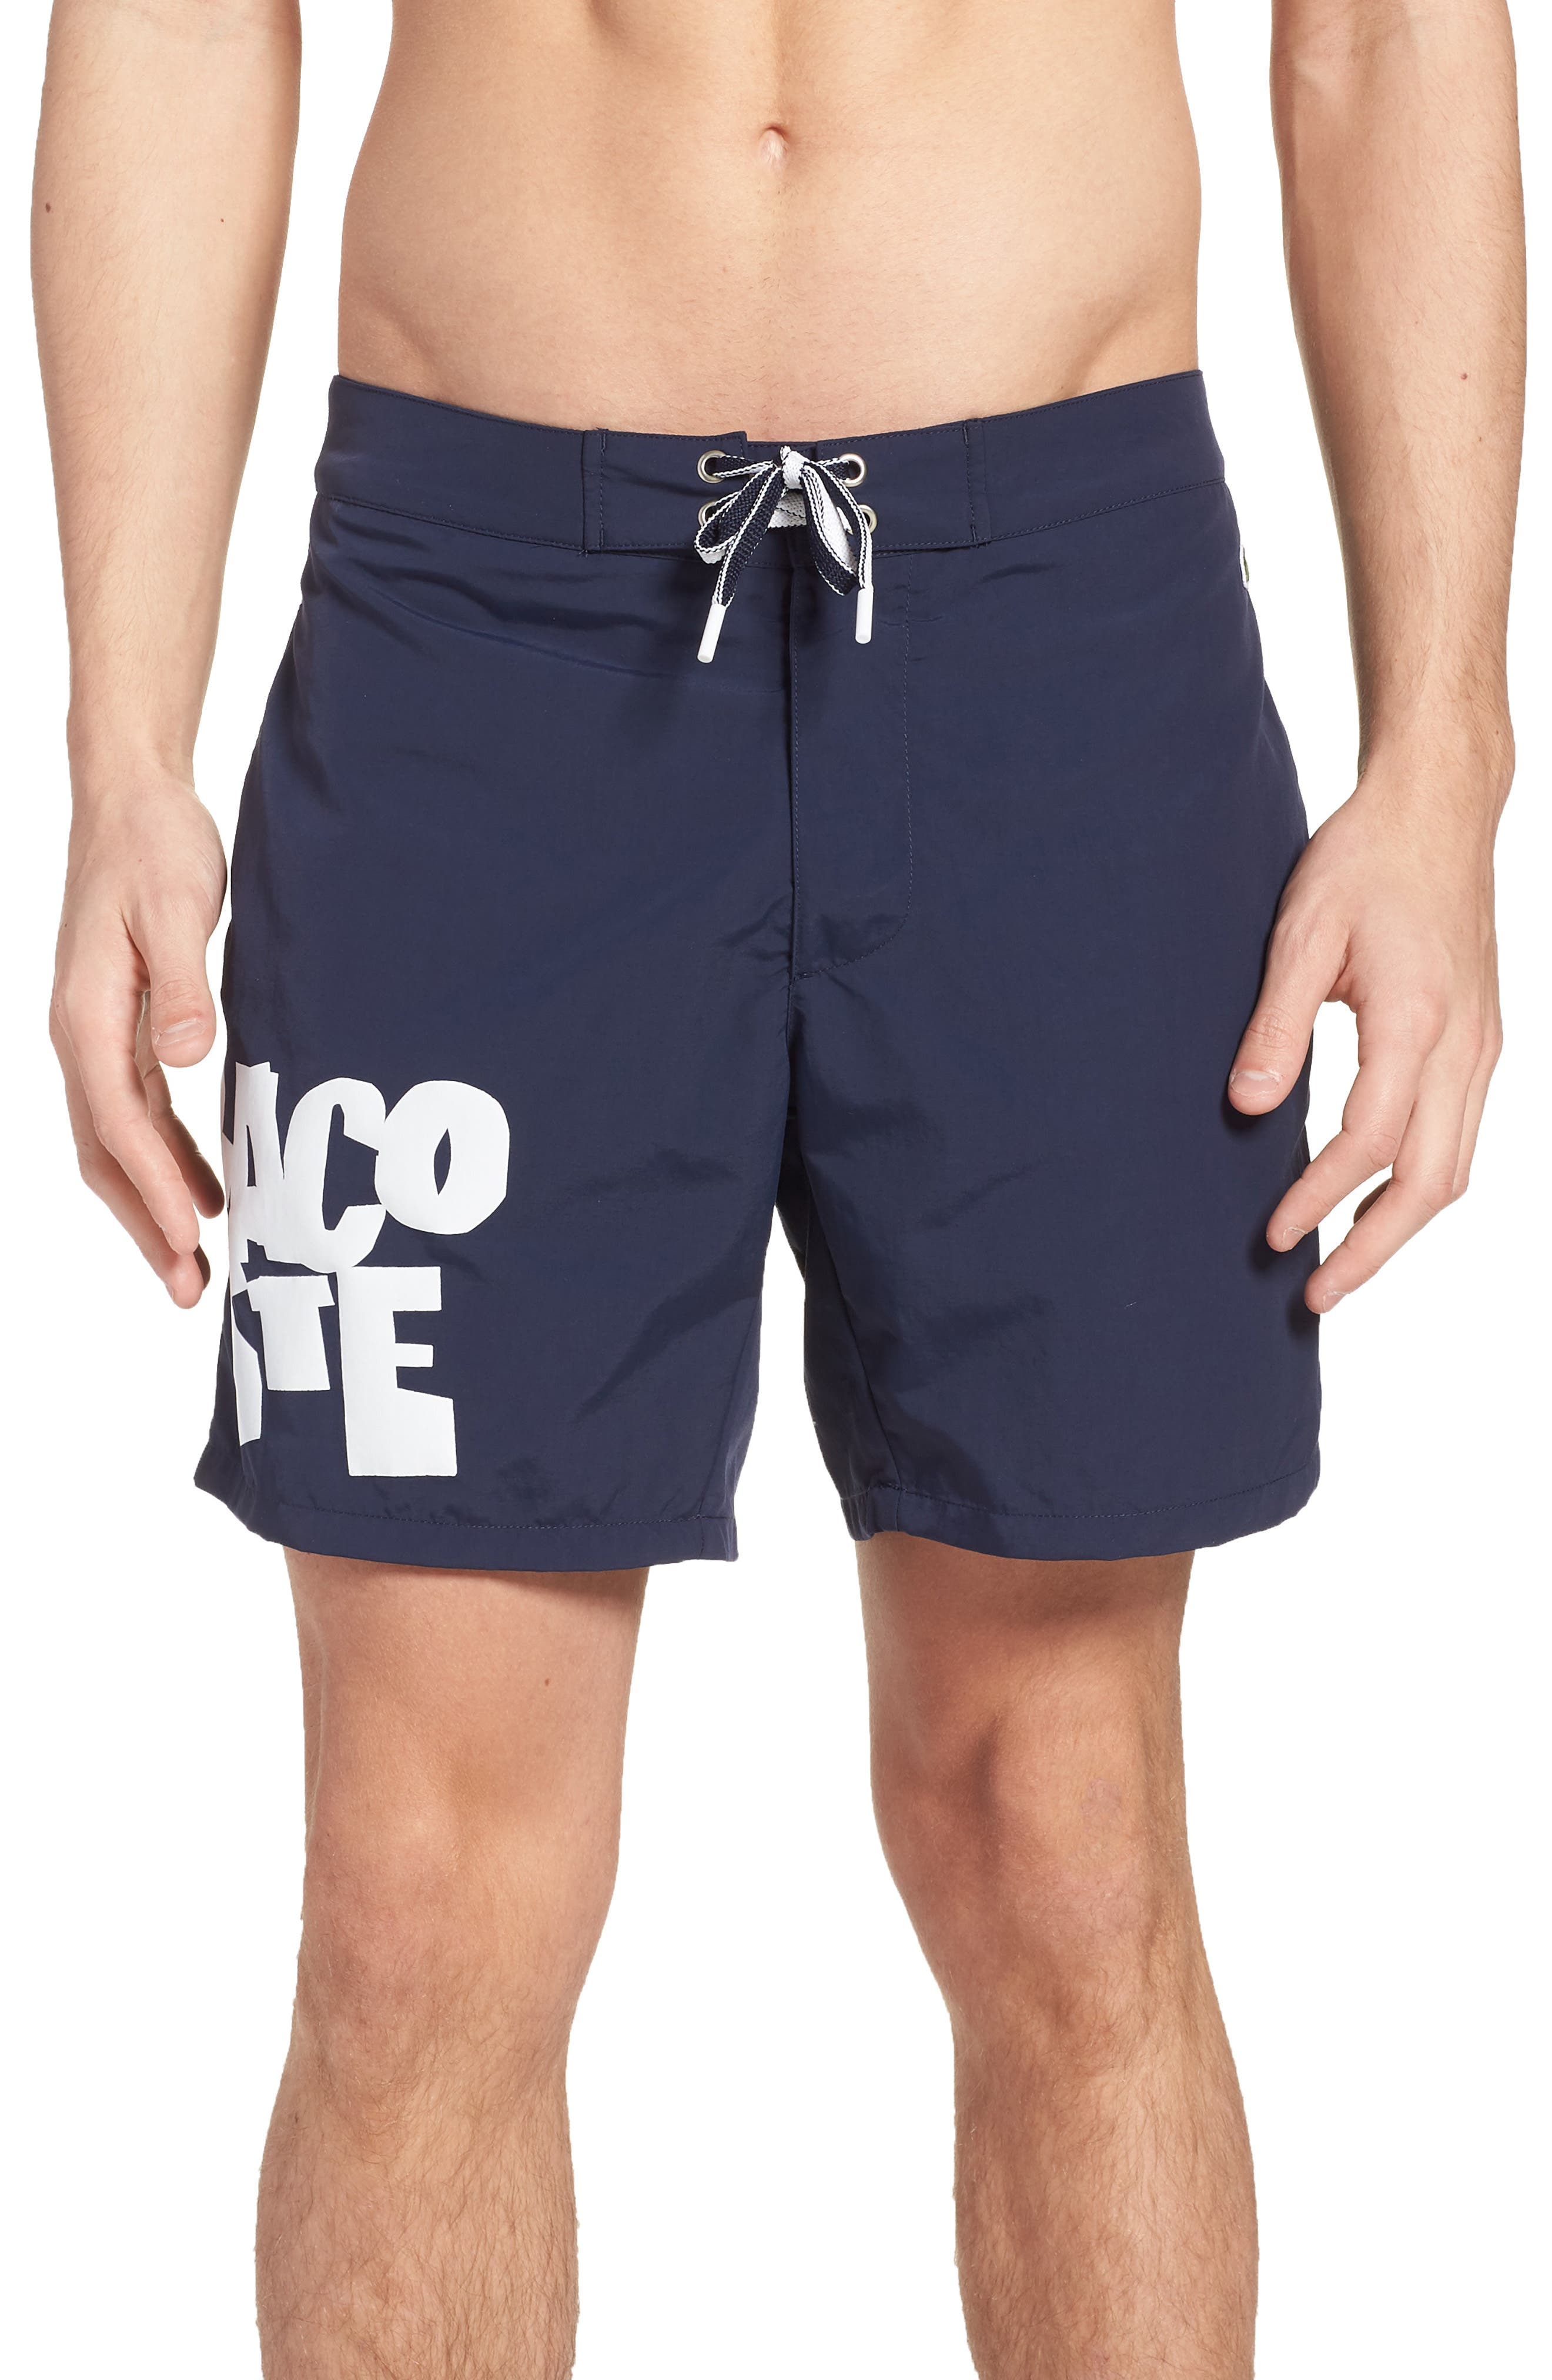 Graphic Swim Trunks,                         Main,                         color, Navy Blue